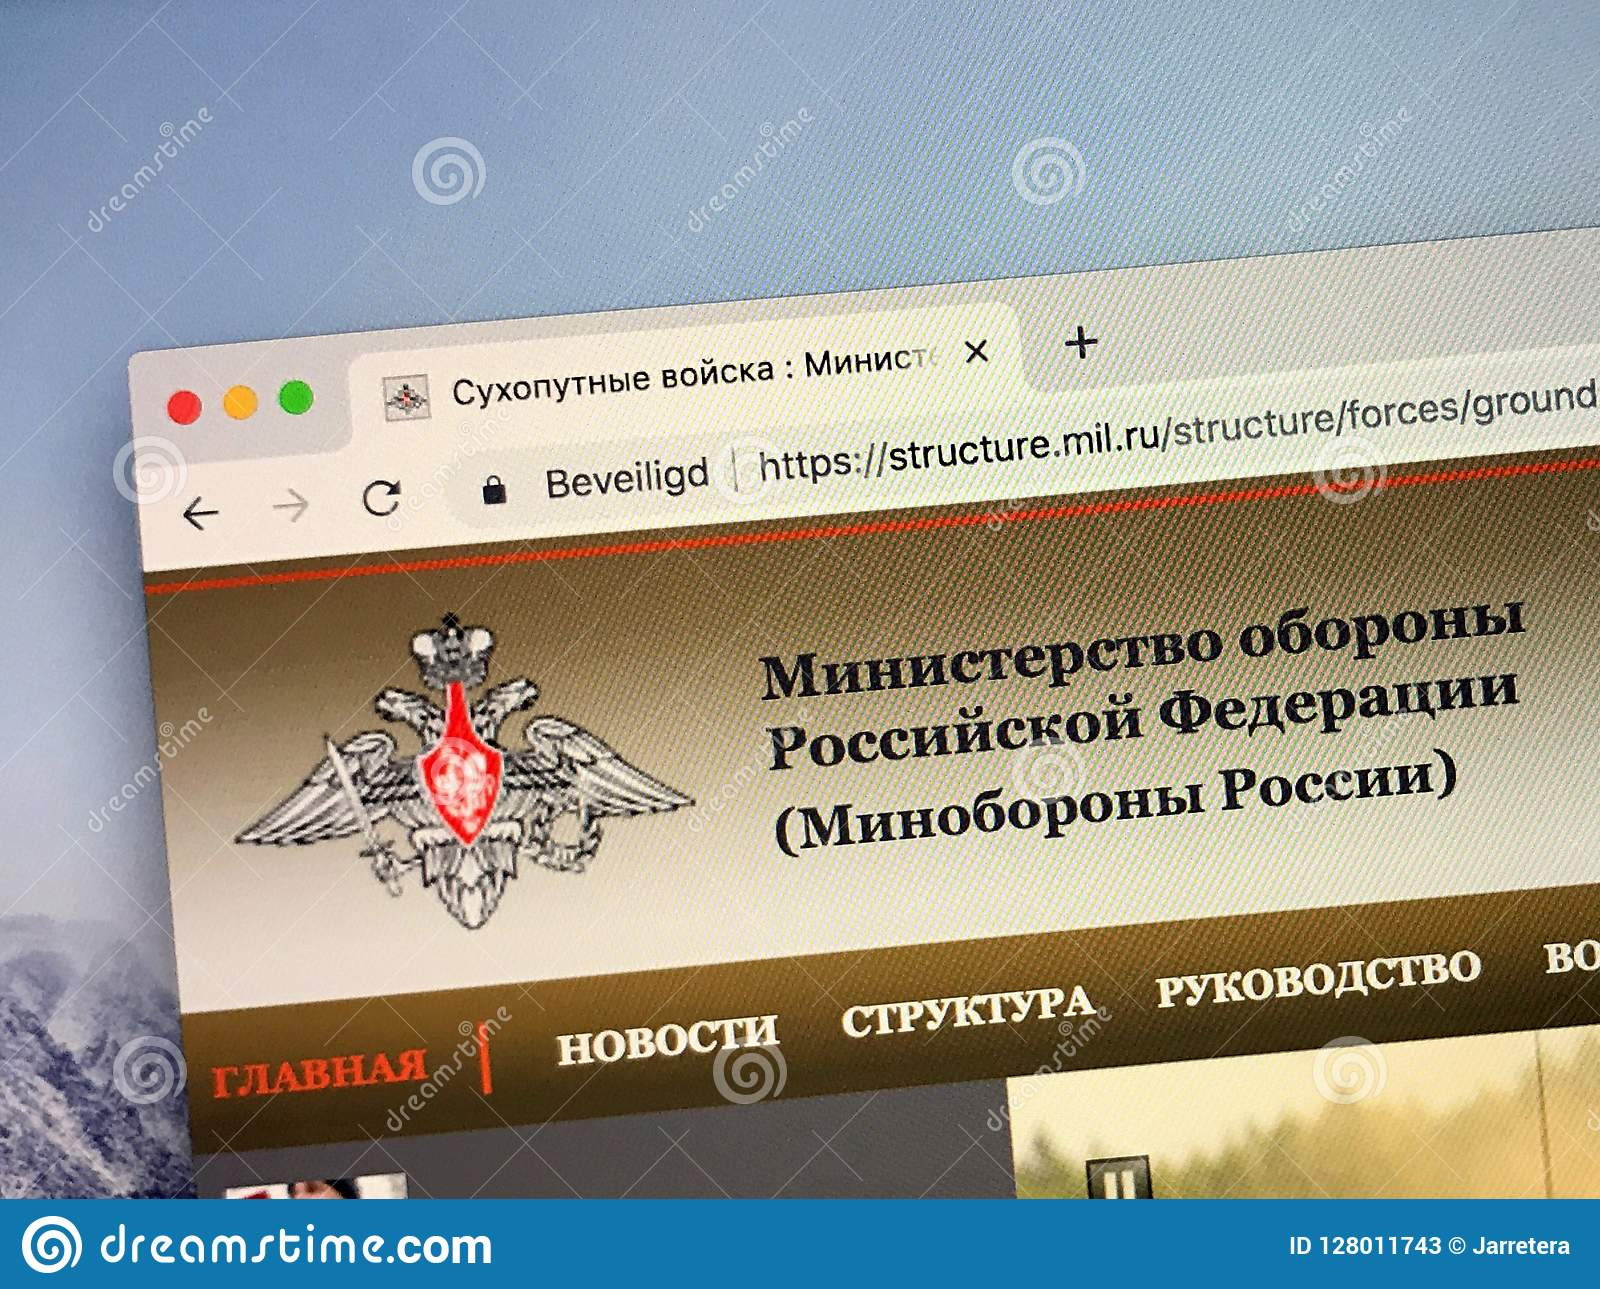 Homepage of The Ministry of defence of the Russian Federation